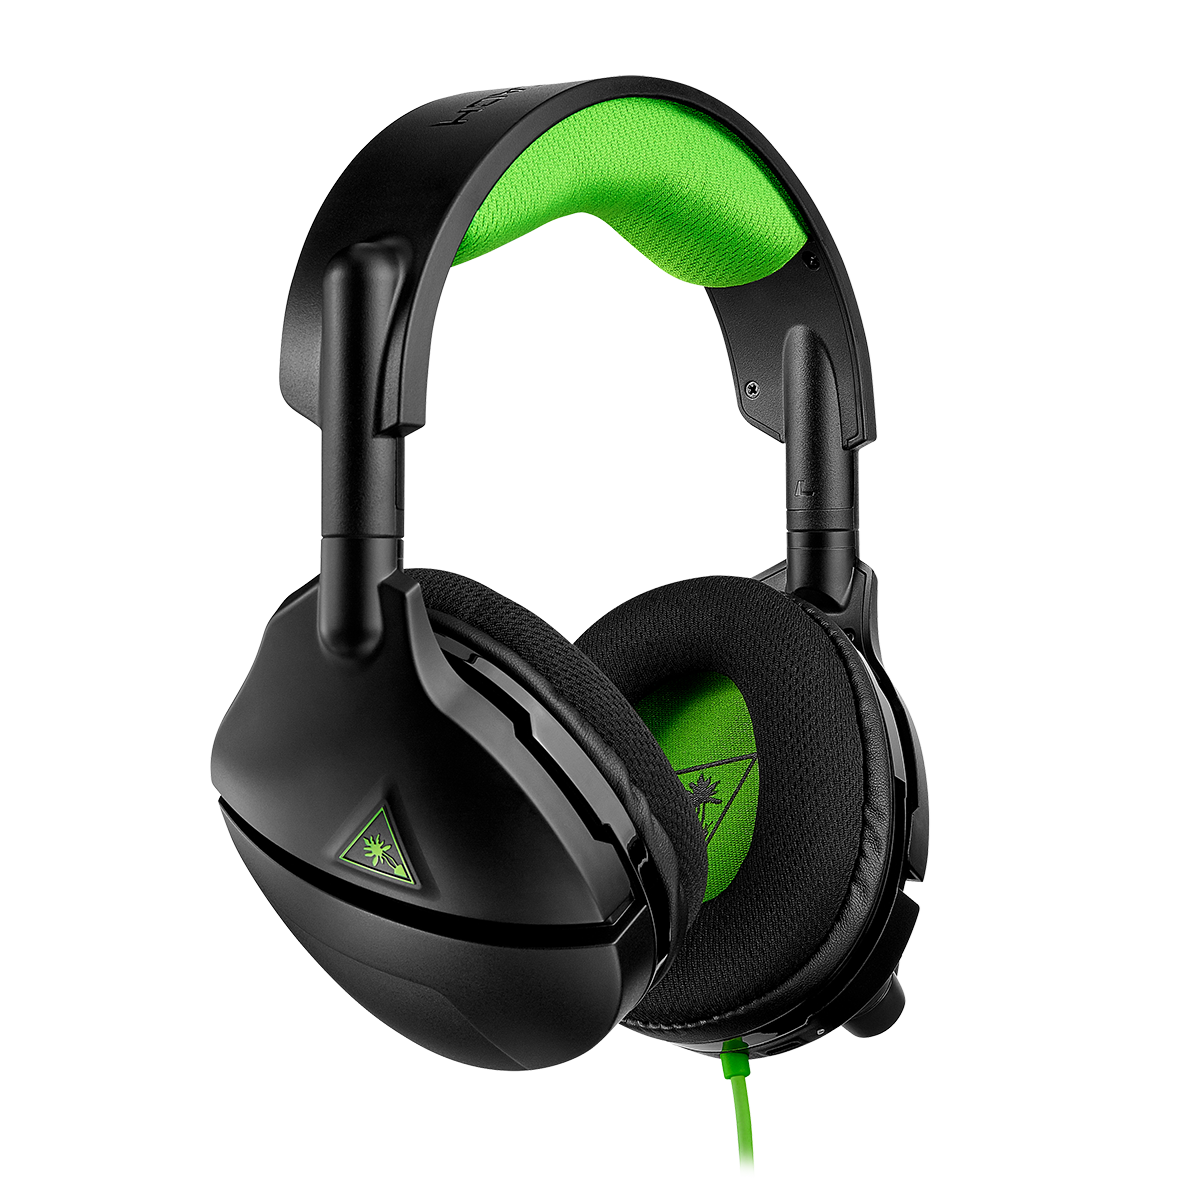 Turtle Beach Usb Wiring Diagram Diagrams Data Base Stealth 300 Headset Xbox One Us Rh Turtlebeach Com On Repair